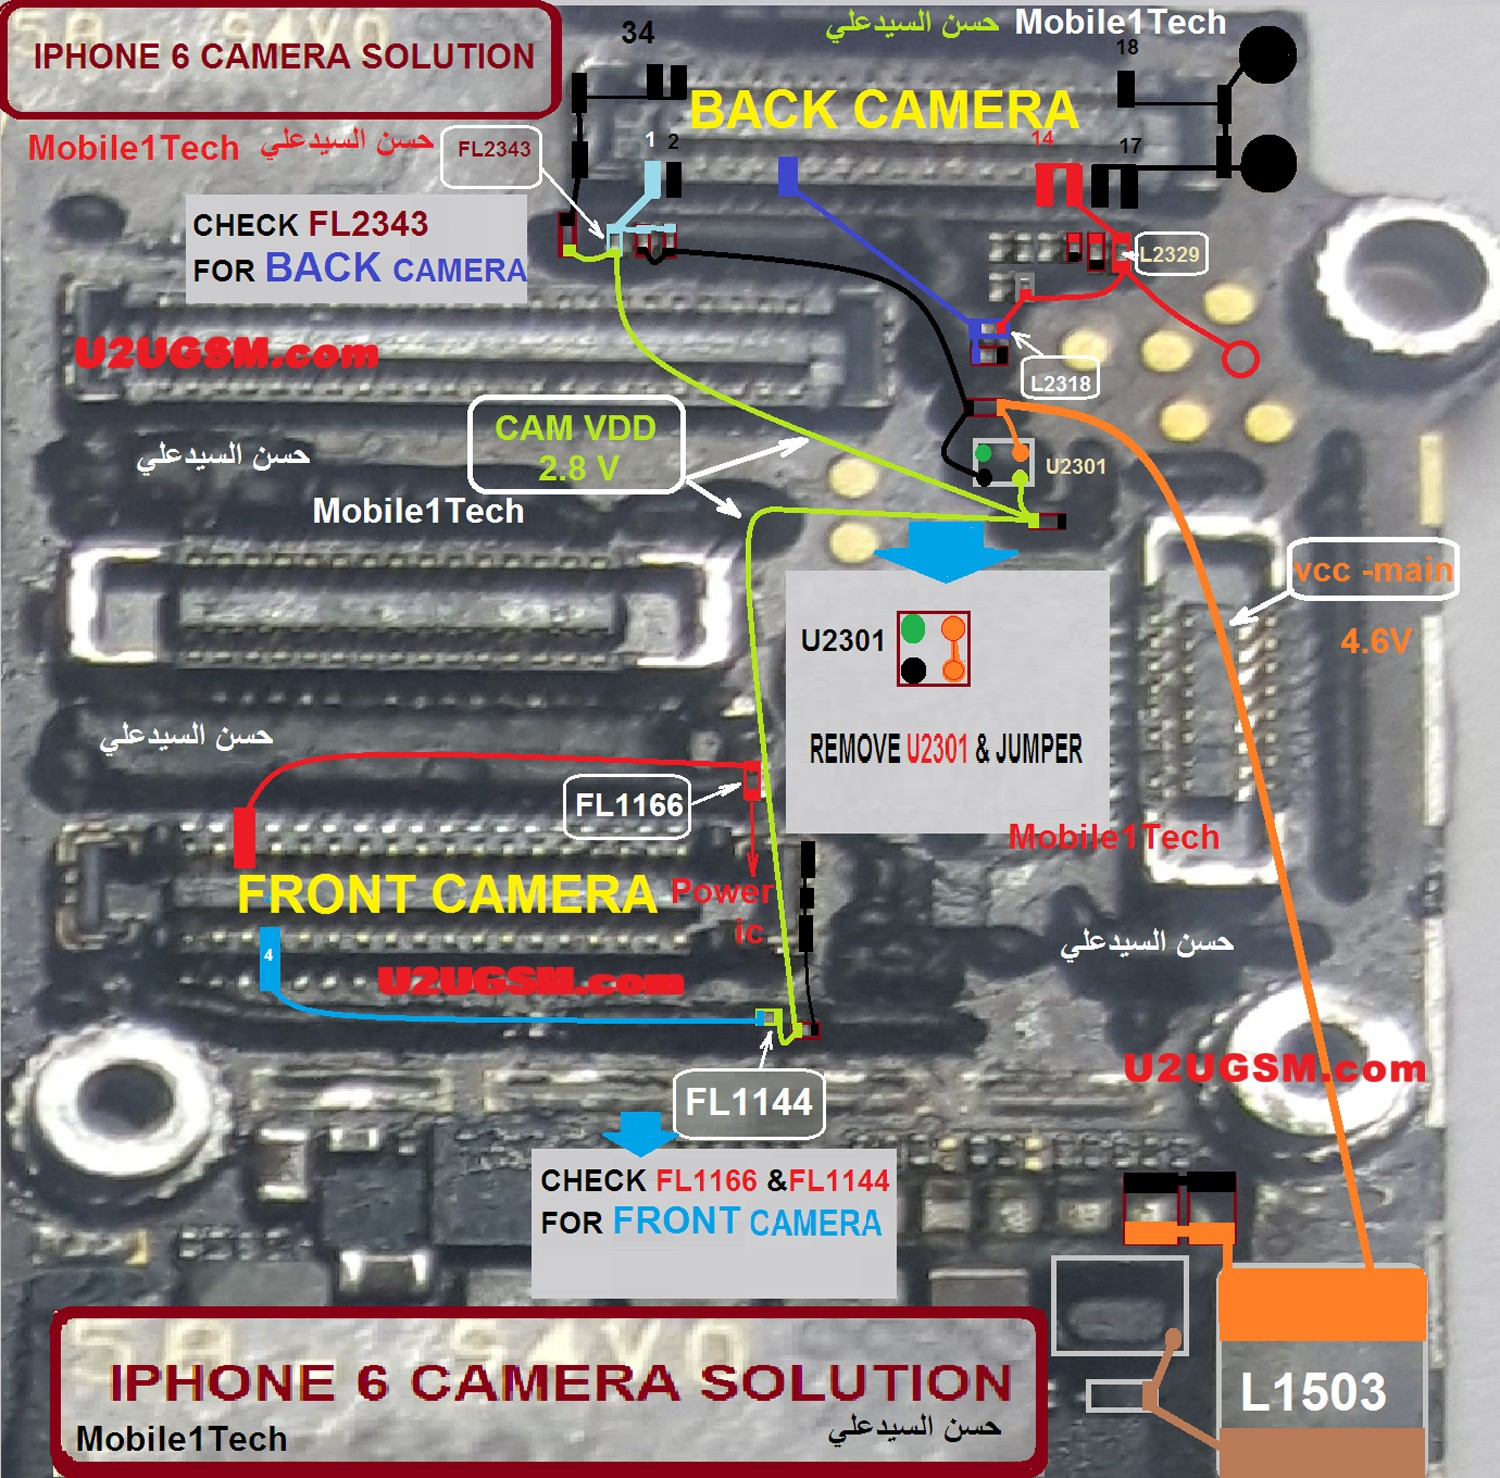 iPhone 6 Camera not Working Problem Solution